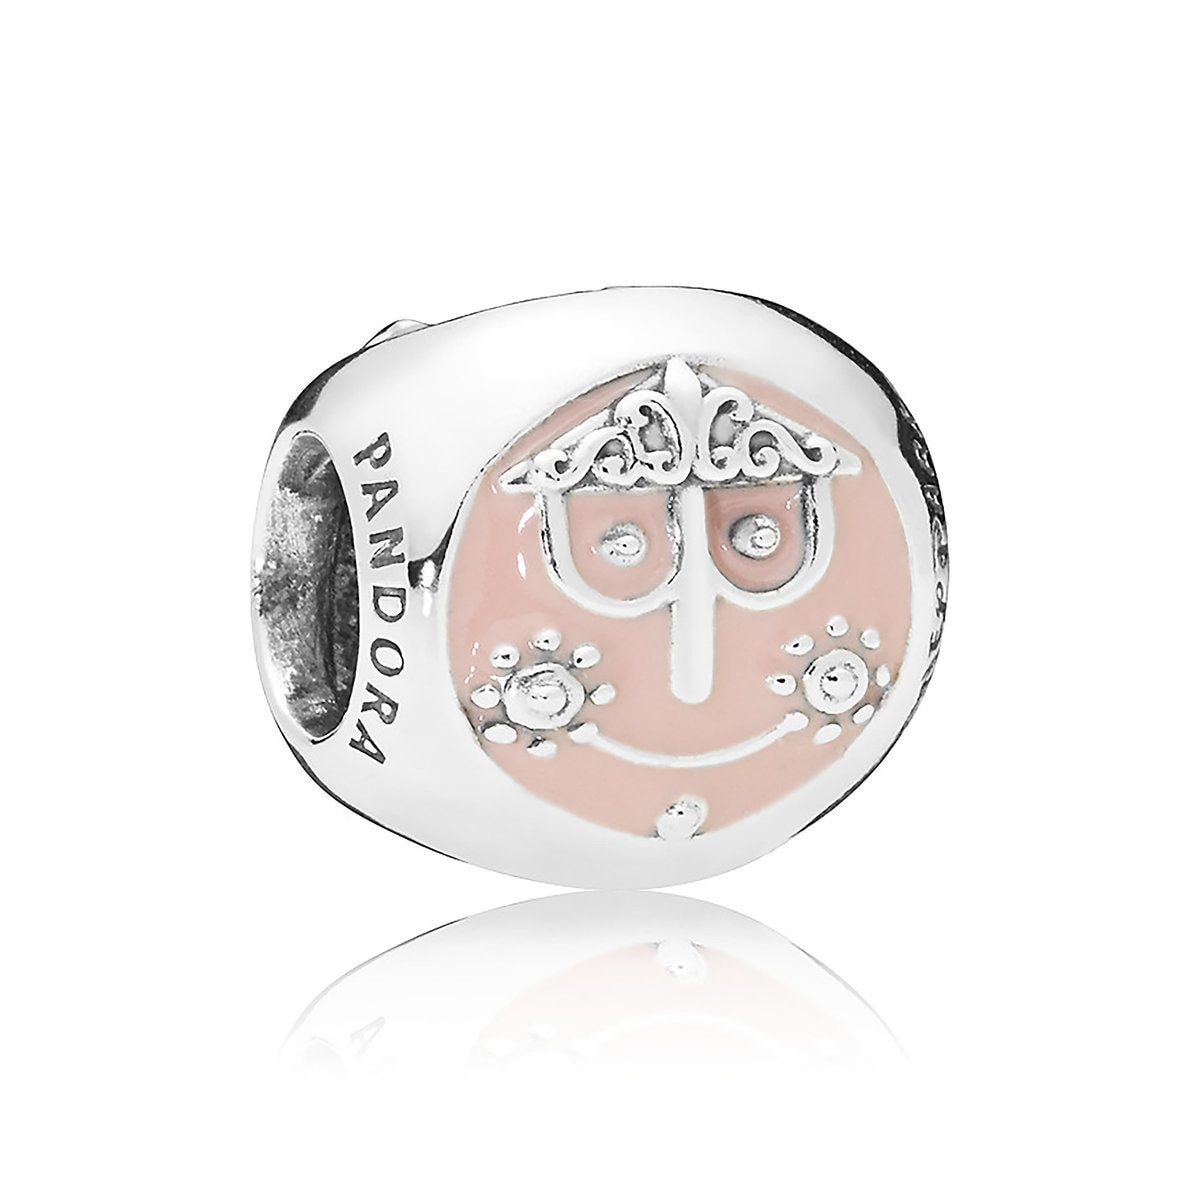 8b2a71aaf Product Image of Disney it's a small world Charm by PANDORA # 1